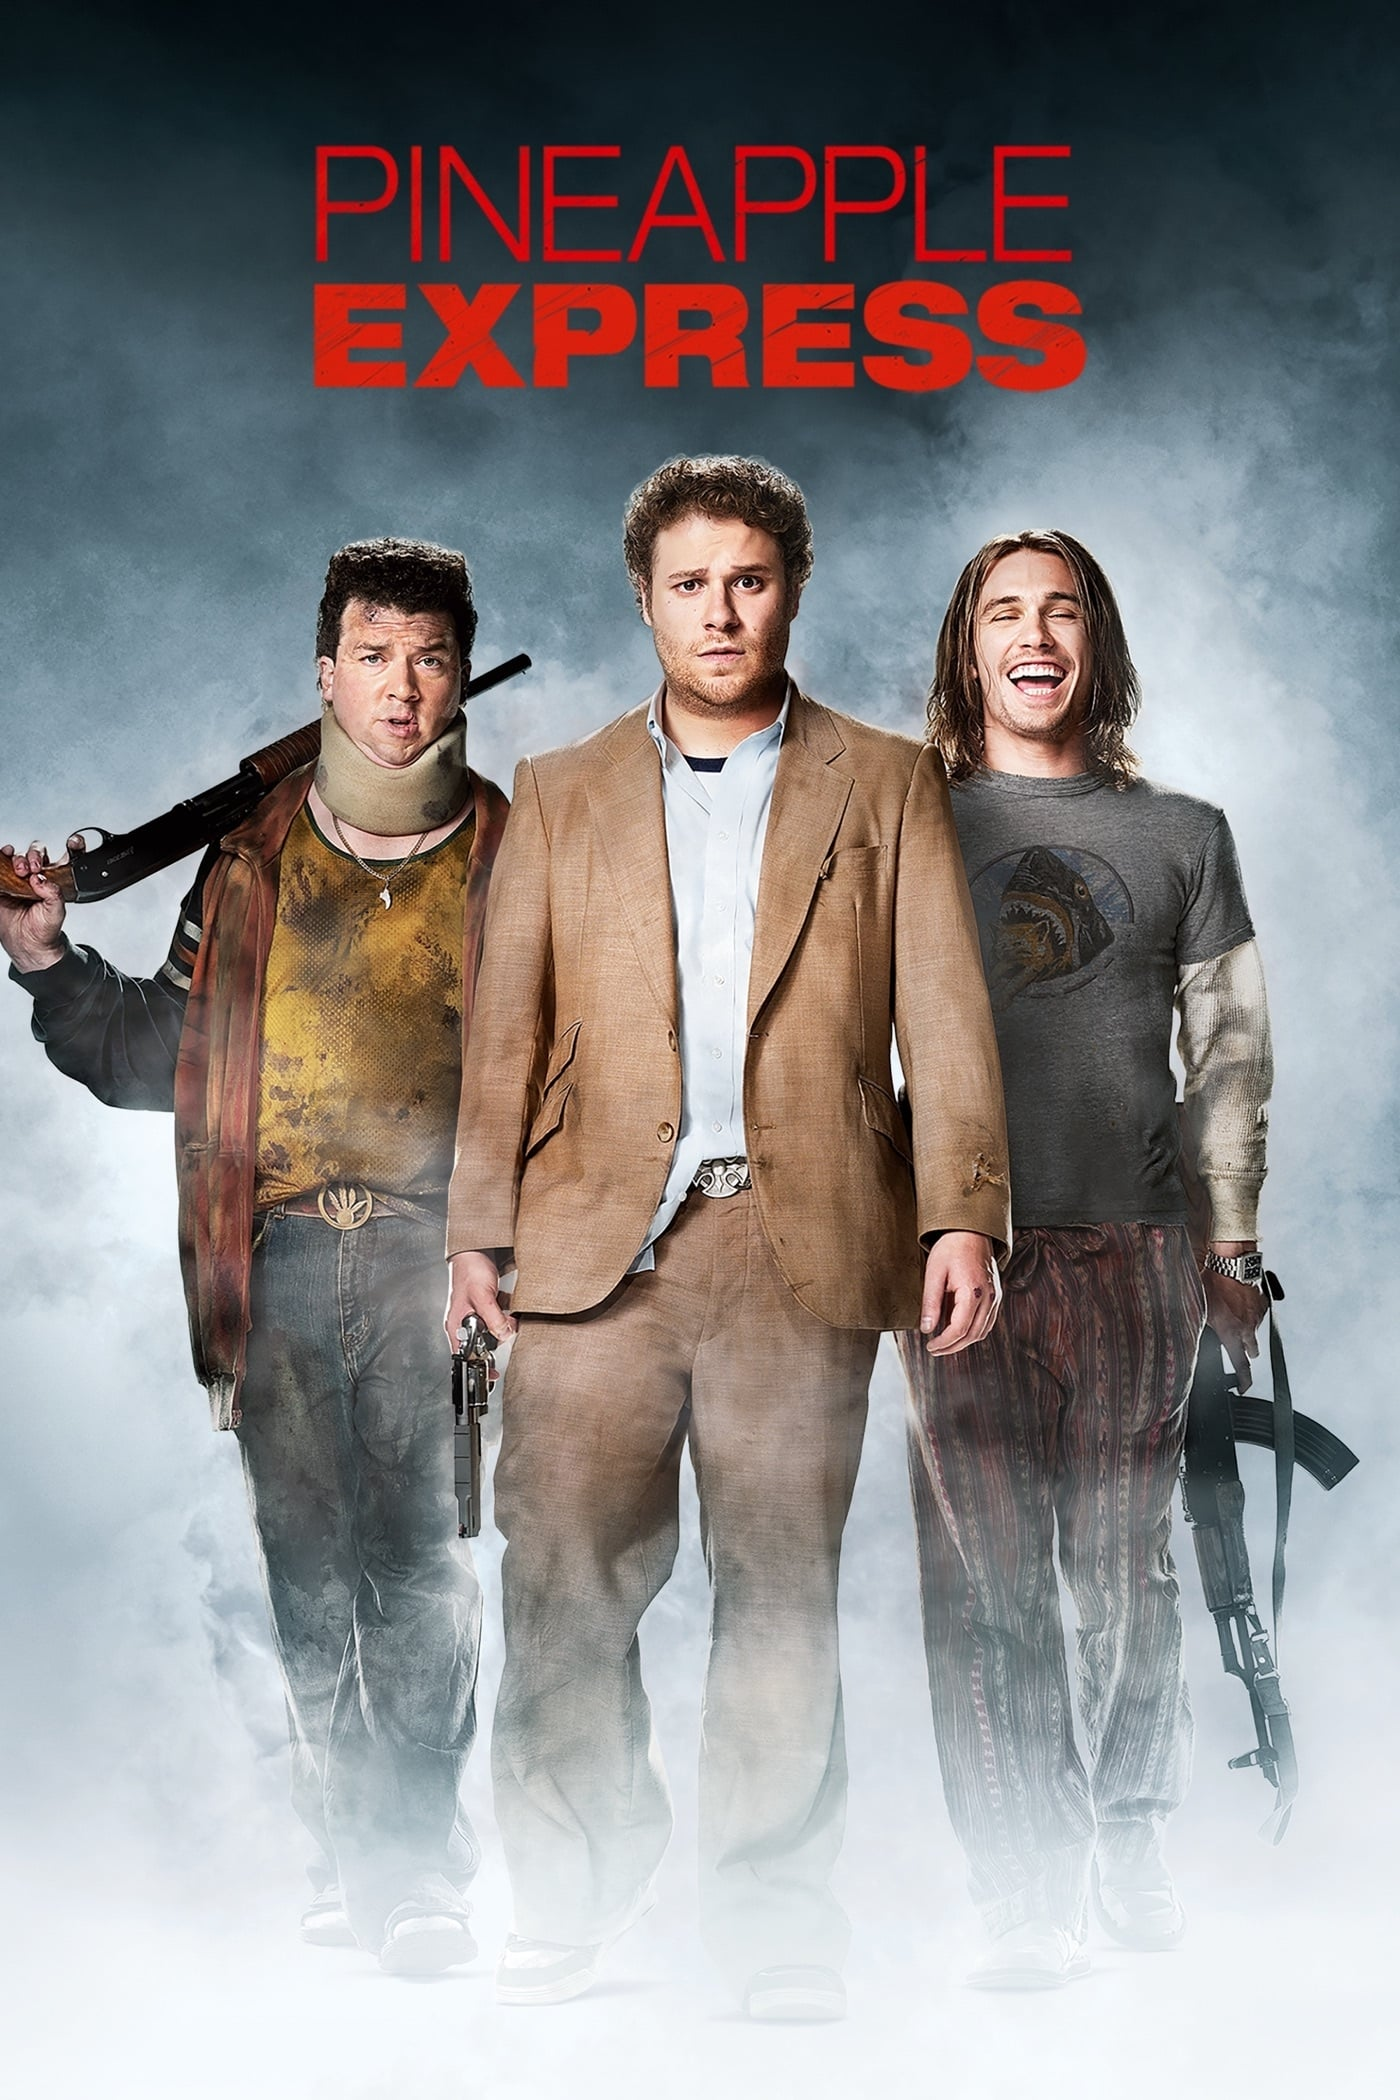 Image Pineapple Express